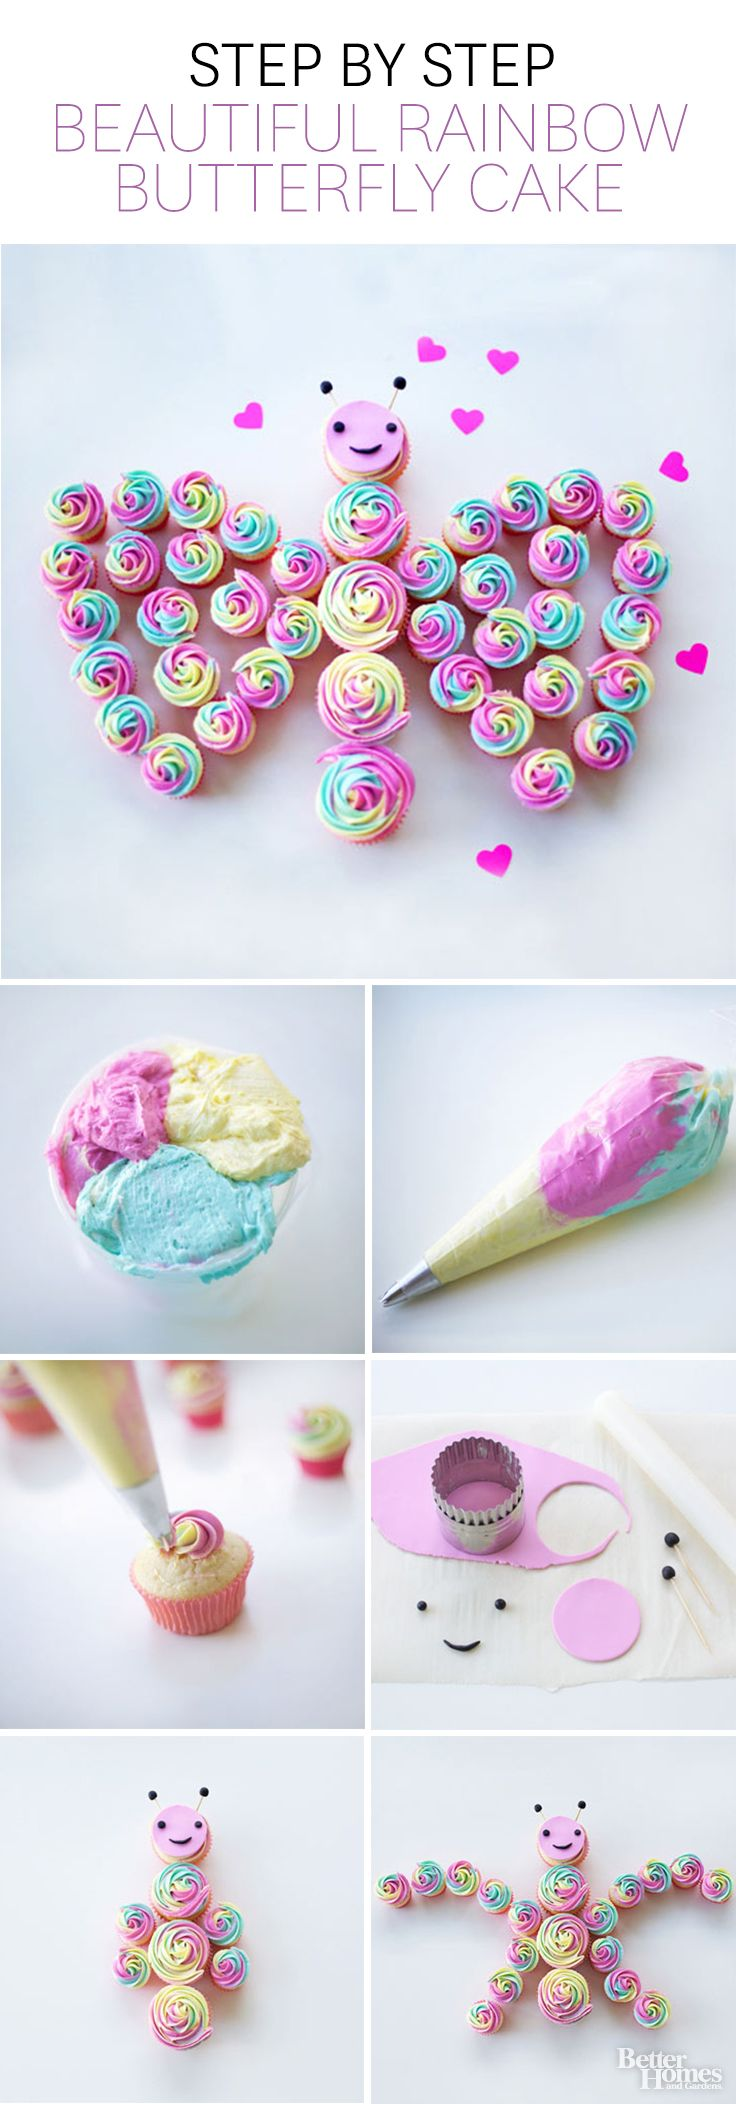 best cupcakes images on pinterest petit fours cute ideas and